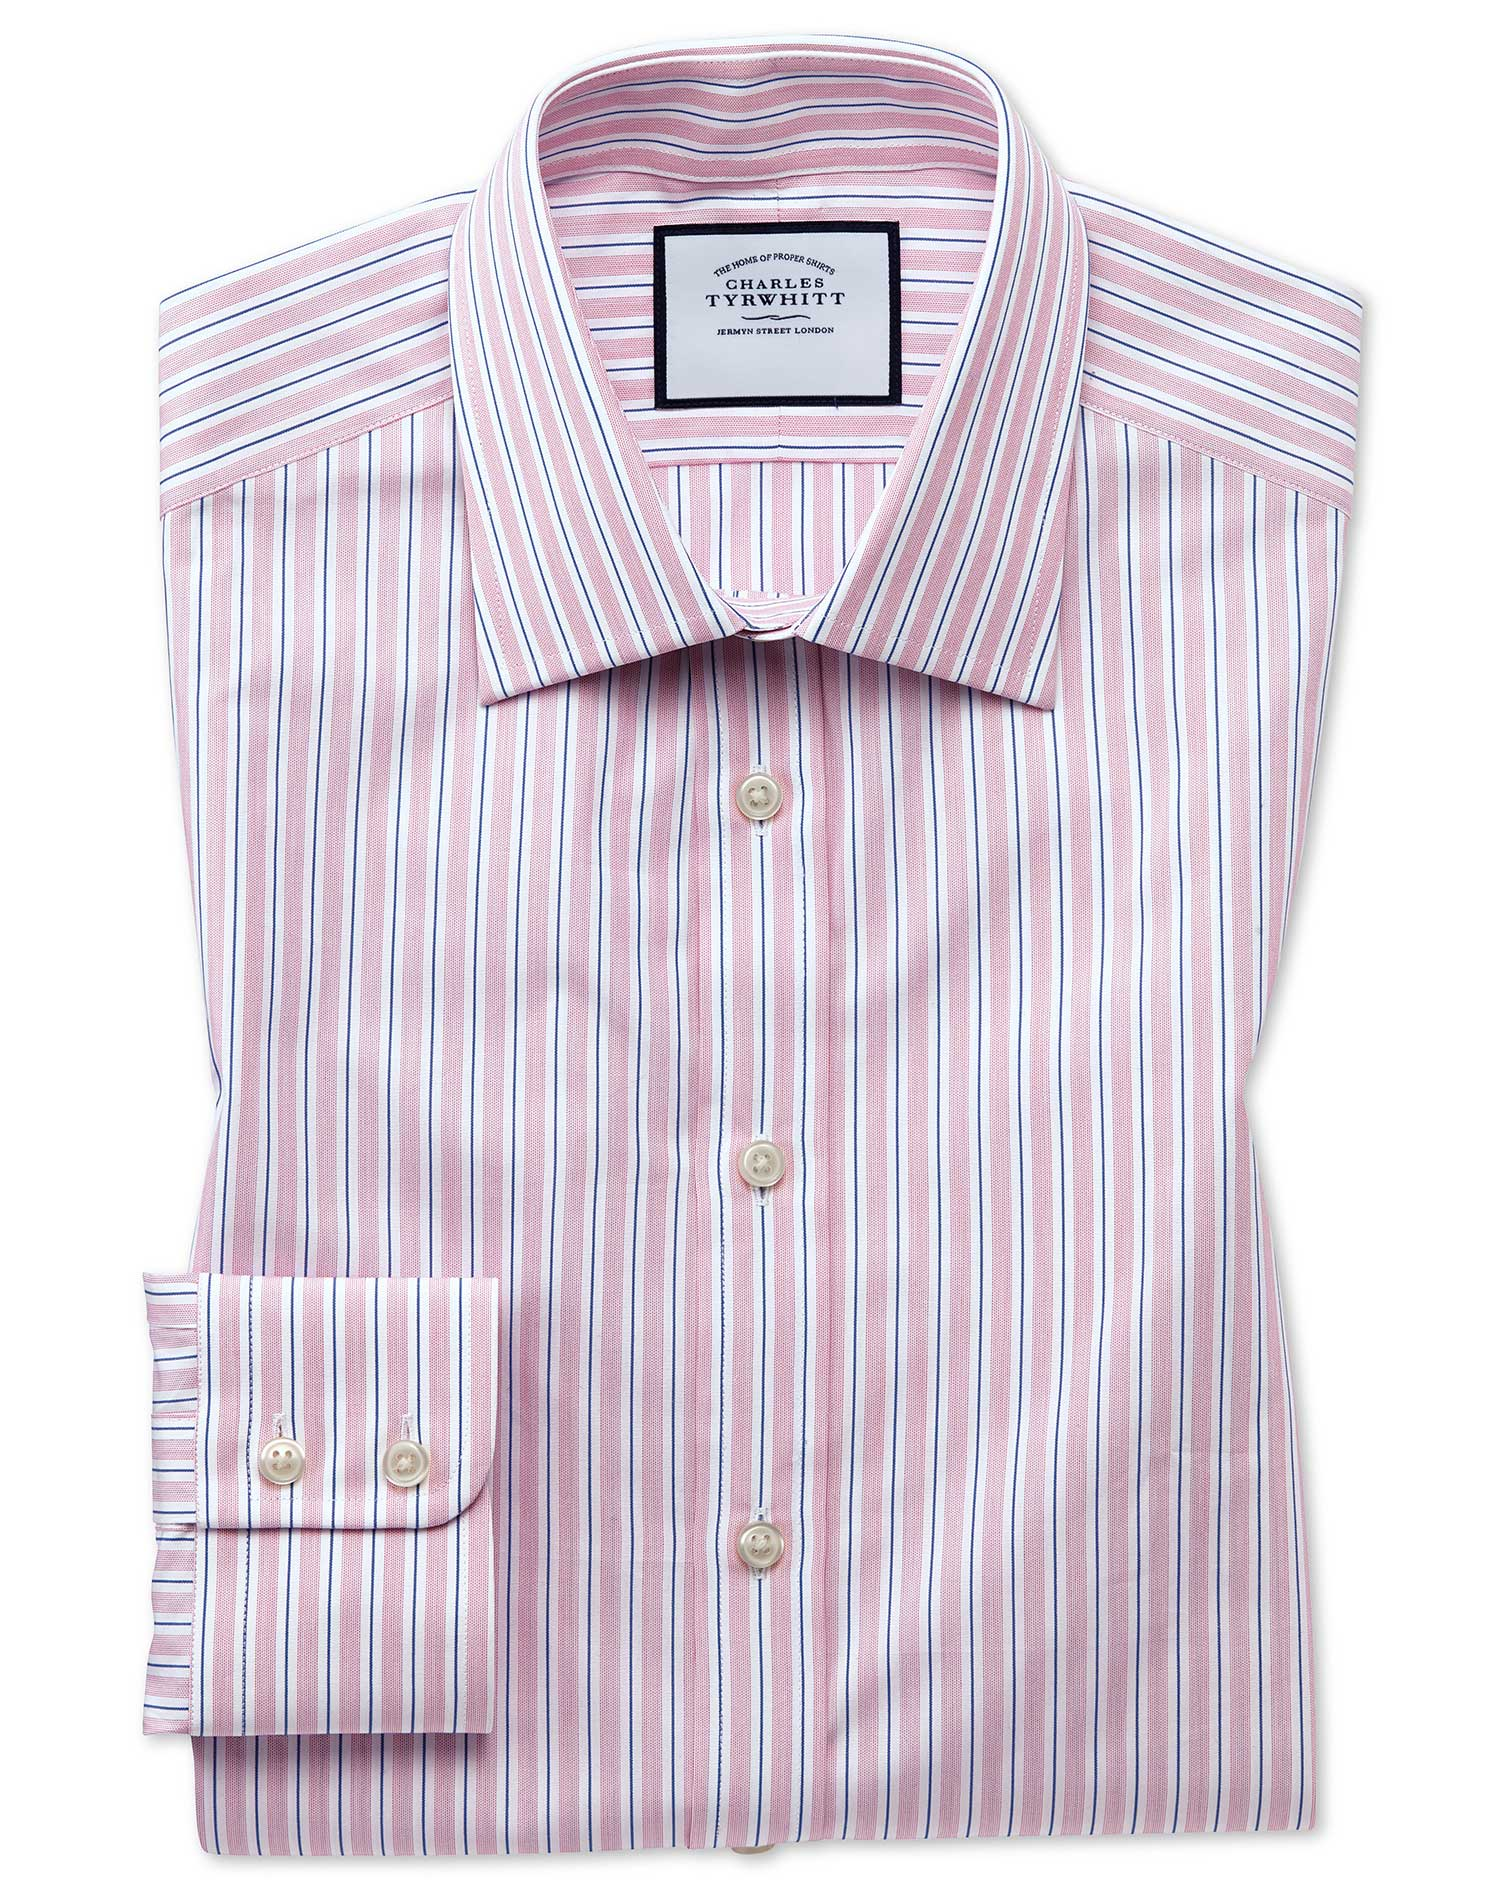 Classic Fit Egyptian Cotton Poplin Pink Stripe Formal Shirt Single Cuff Size 16/34 by Charles Tyrwhi